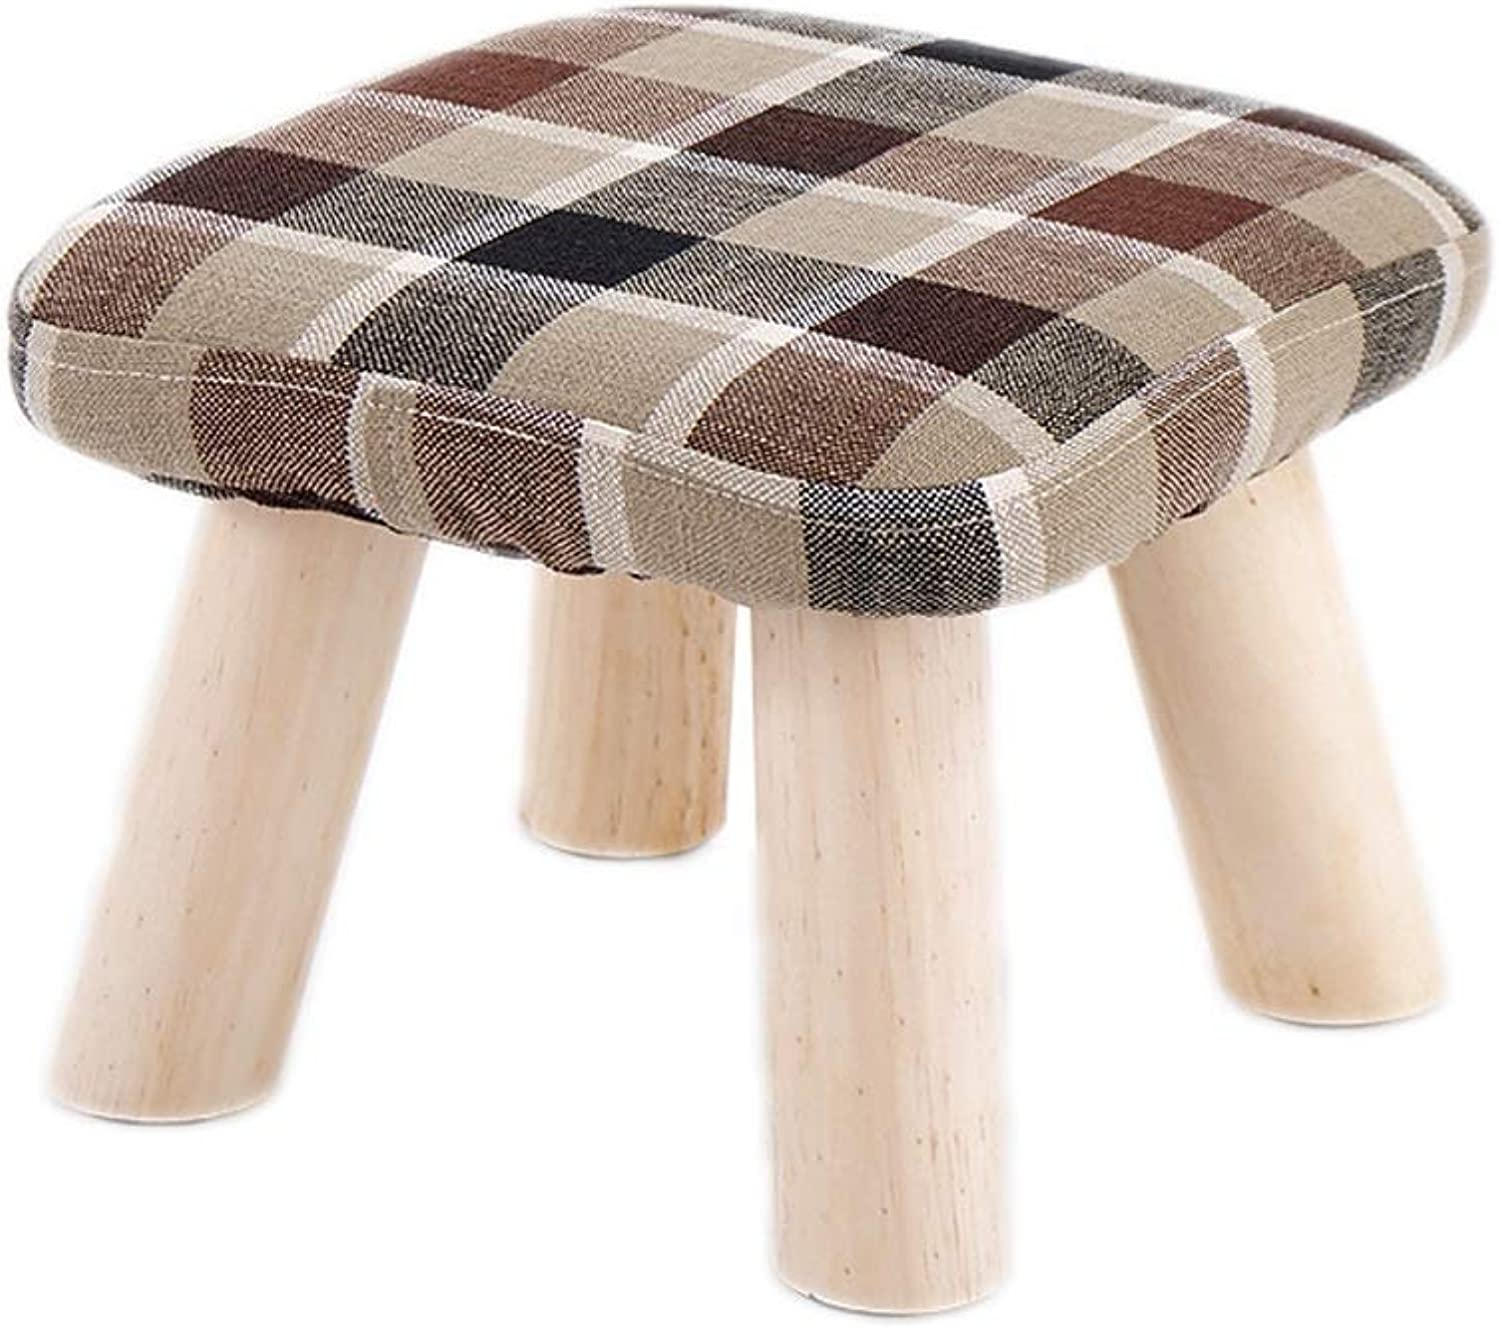 Storage Stool Footstool Lattice Wooden Couch Pouffe Chair Stool Home Upholstered Footchair Footstool LEBAO (color   Brown)